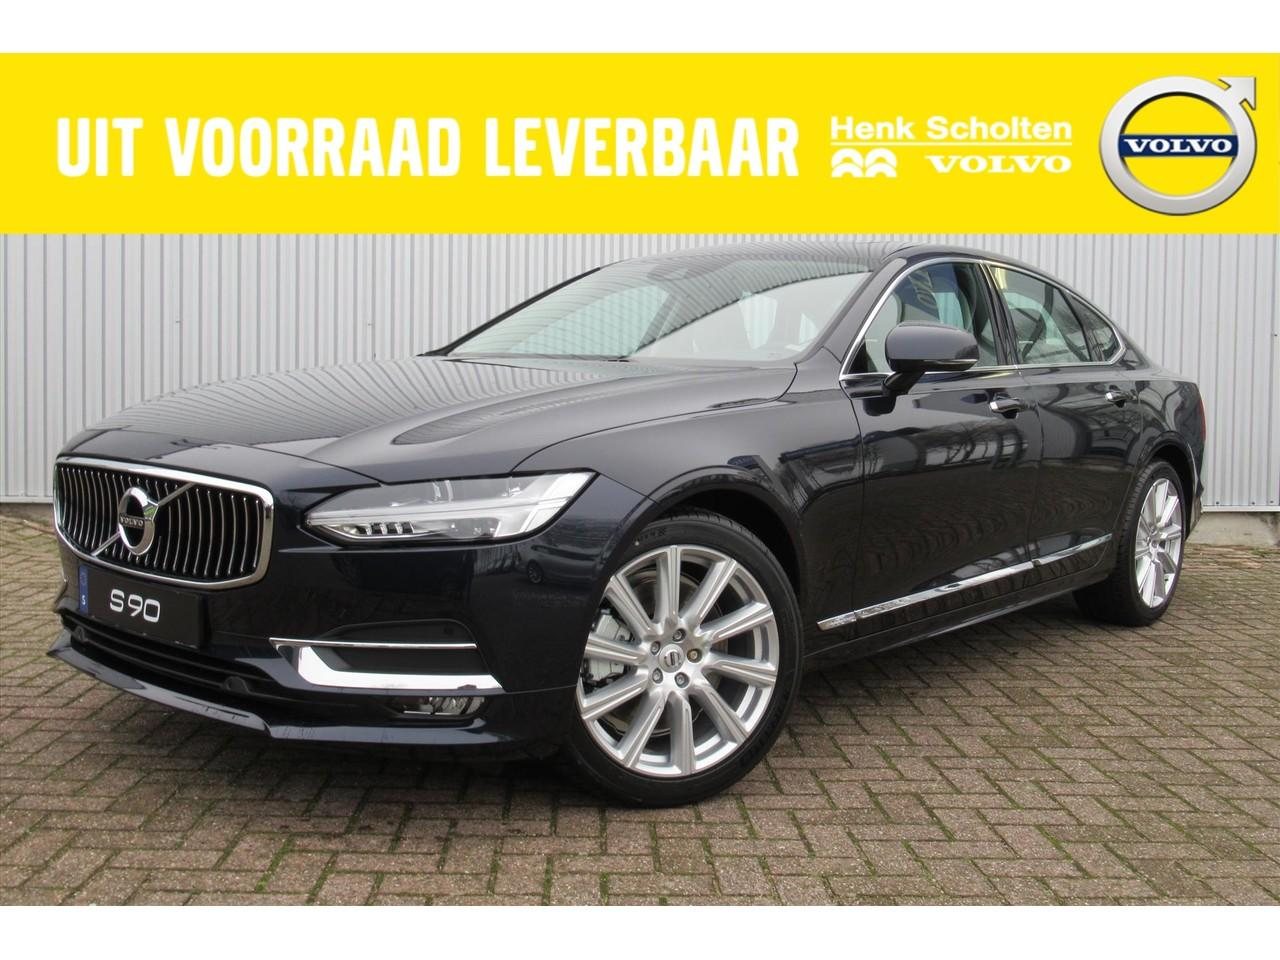 Volvo S90 T4 inscription dab+ stoelverwarming